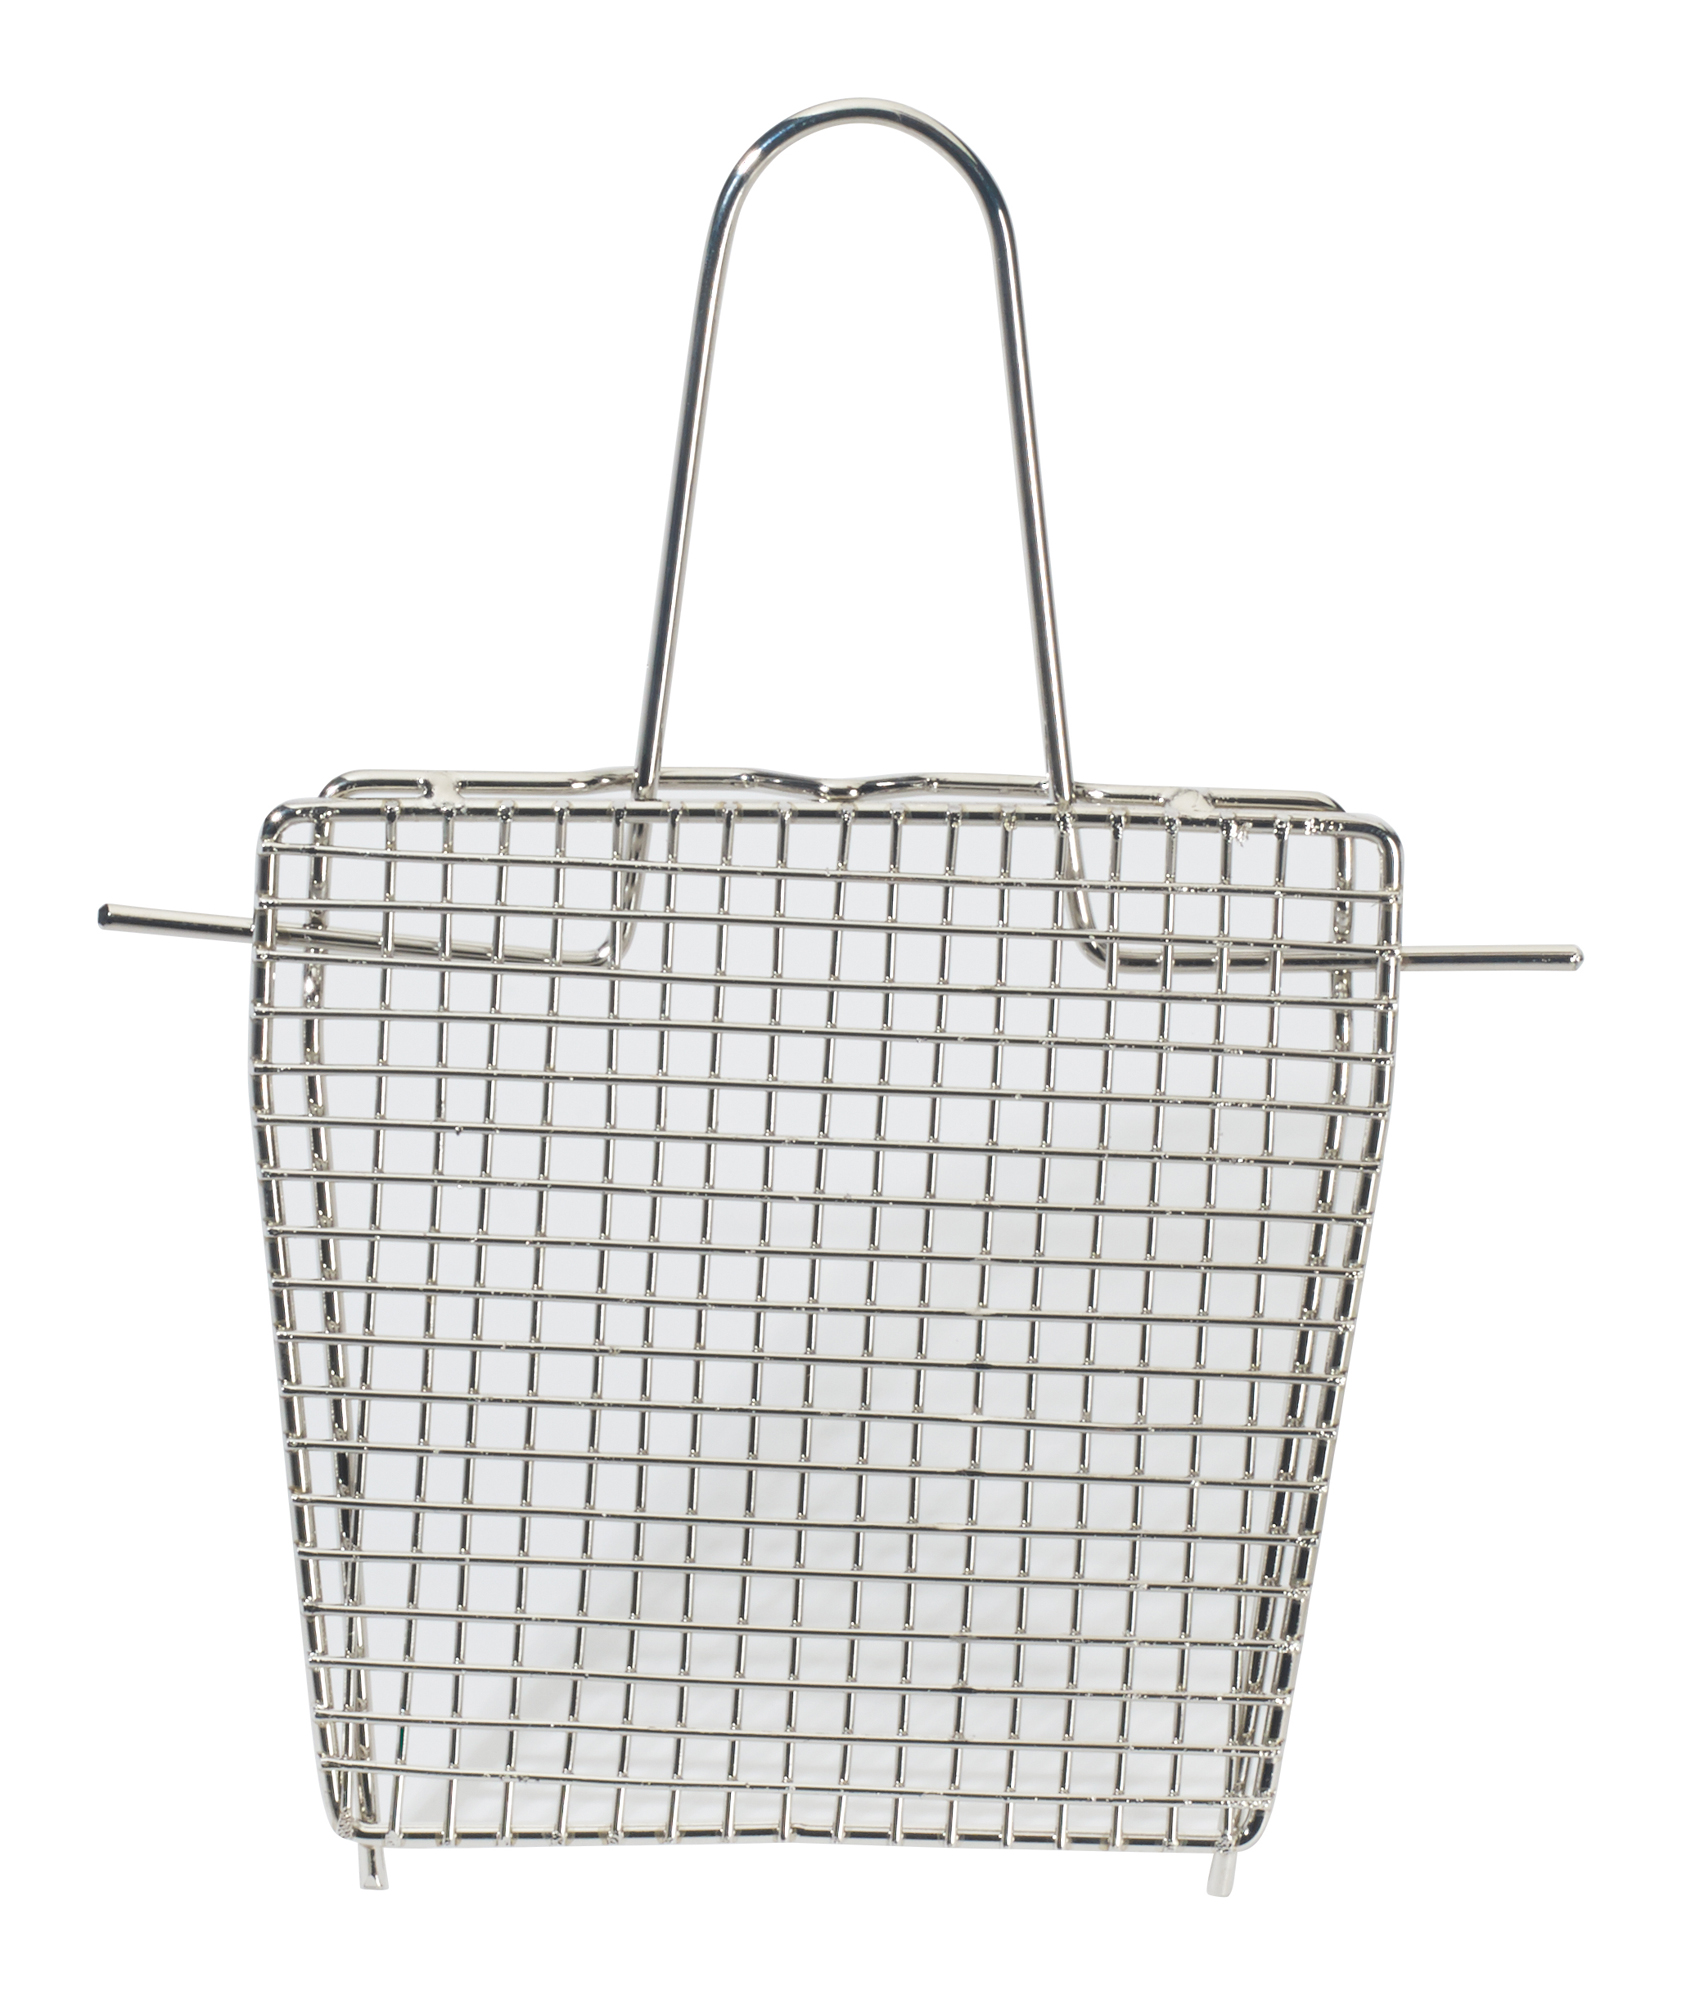 Winco FB-DIV fry baskets